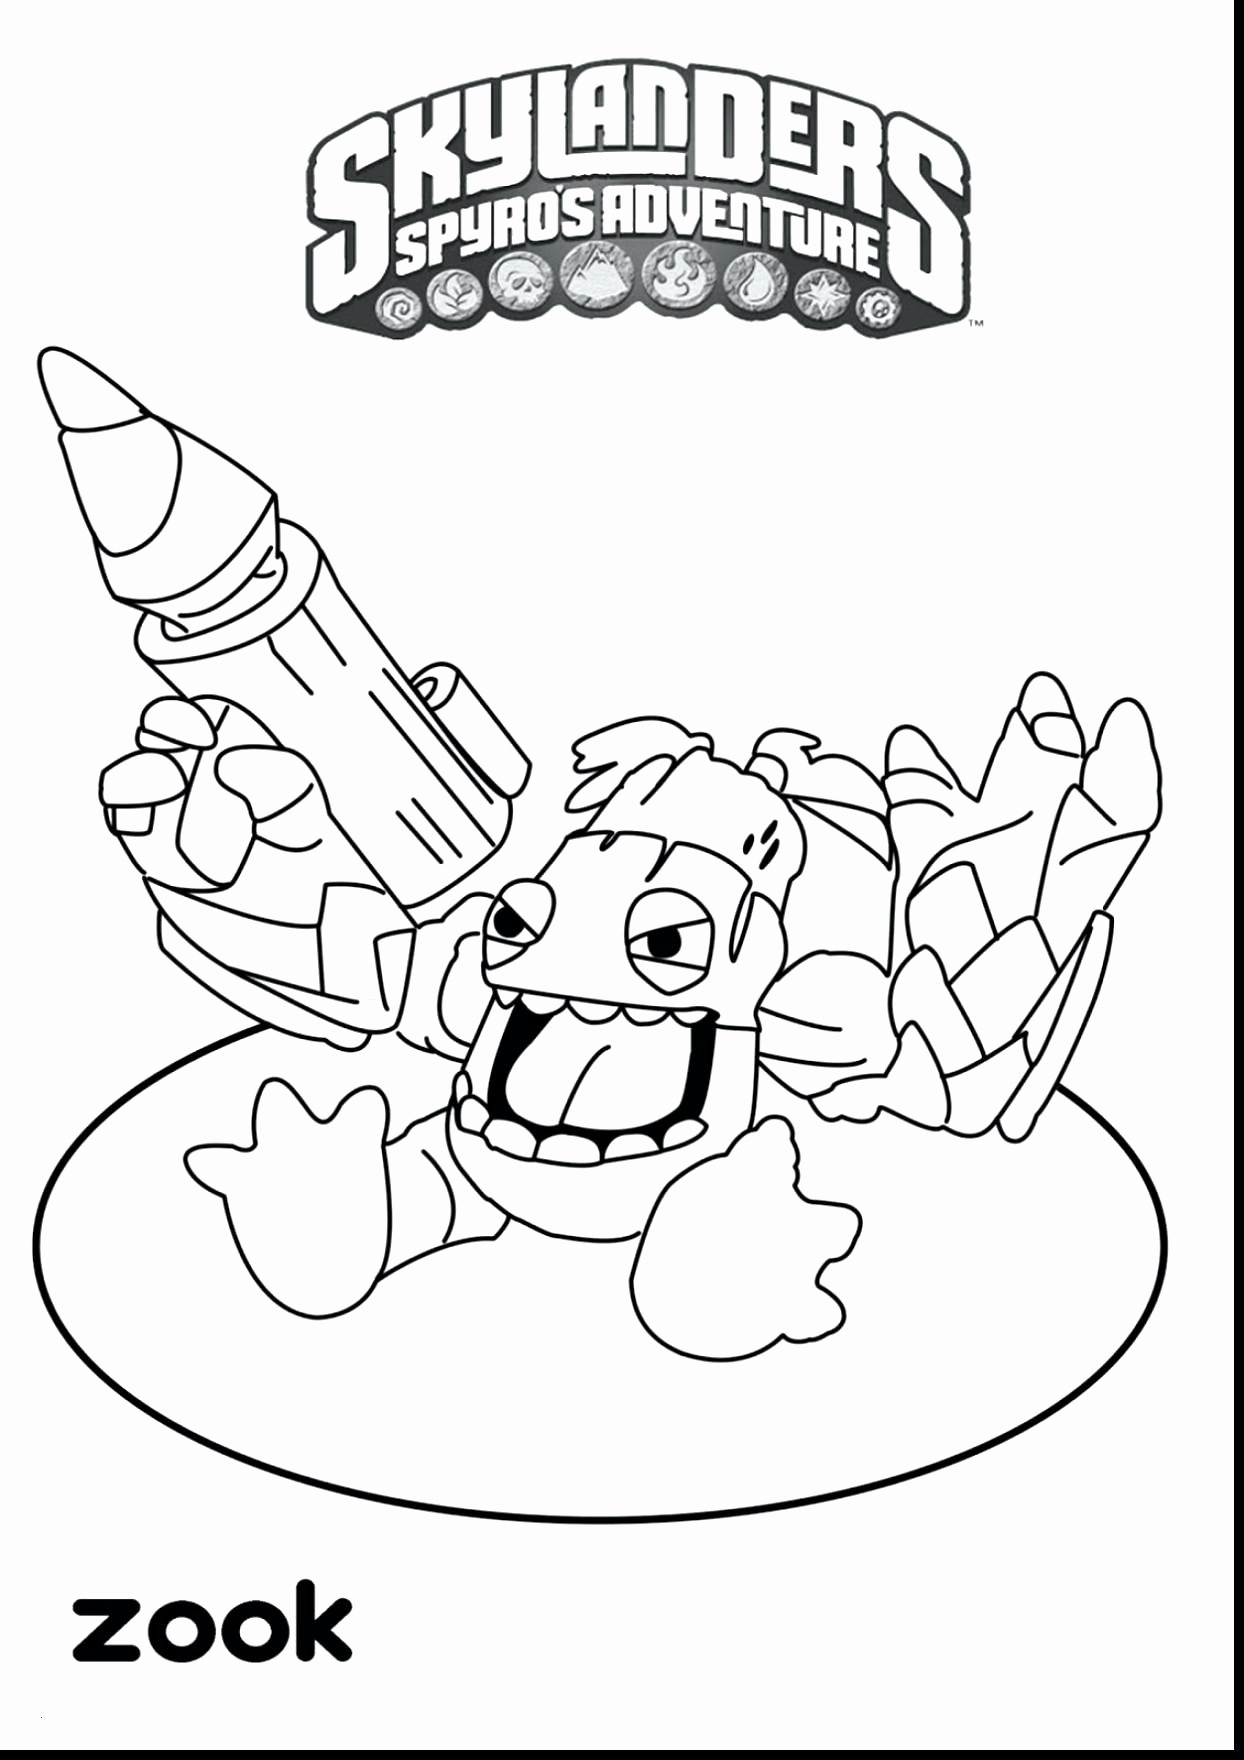 halloween skeleton coloring pages Download-Skeleton Coloring Pages Printable Skeleton Coloring Unique Coloring Clip Art Lovely New Red 2-i